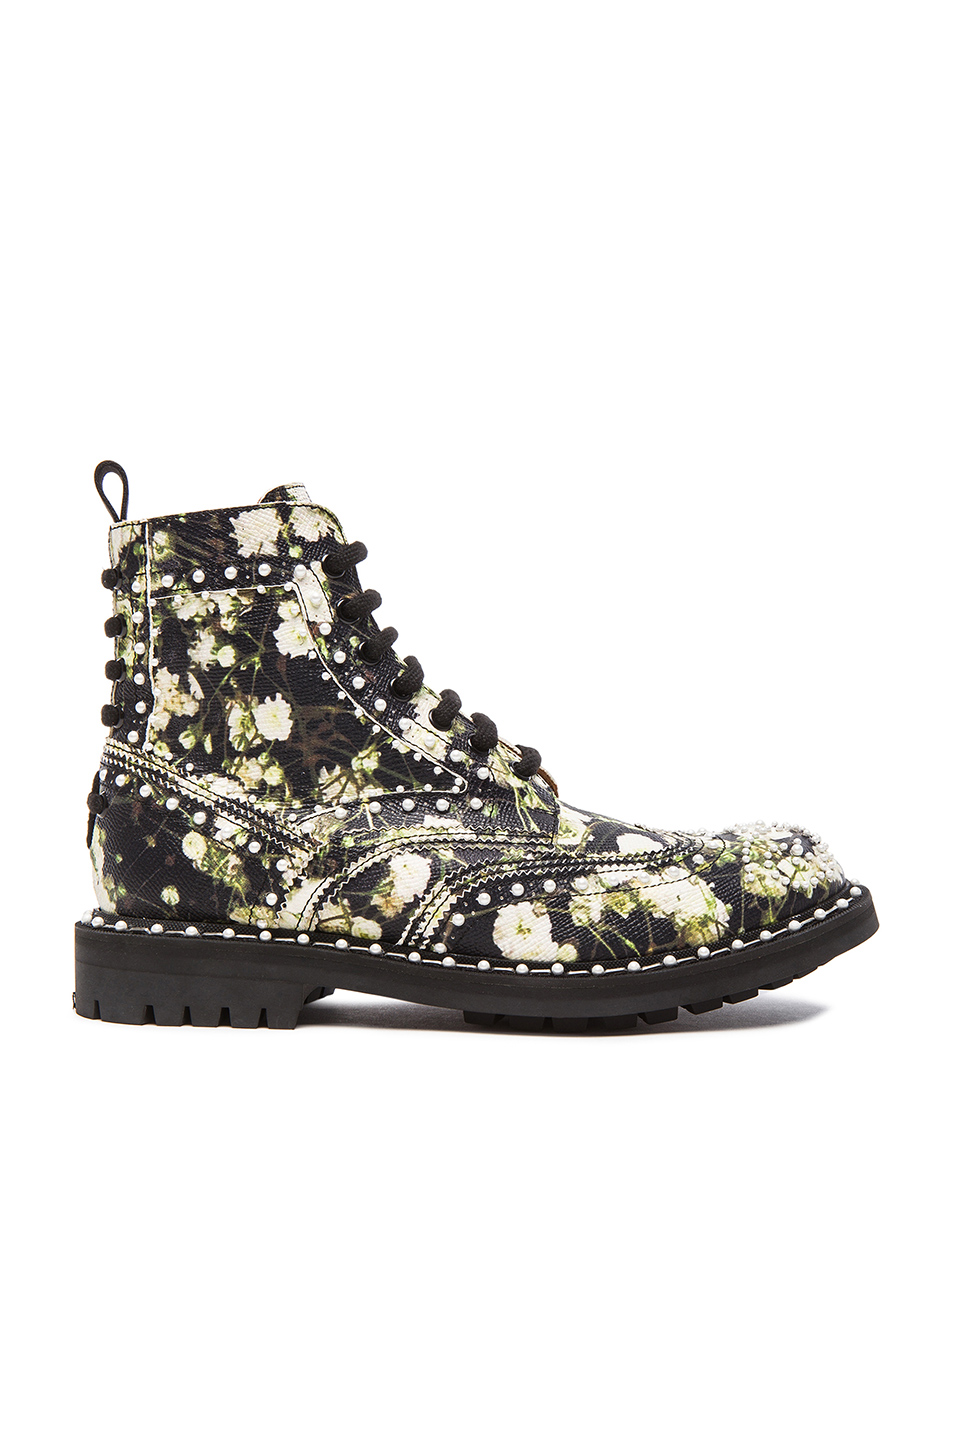 Givenchy Woman Ankle Boots In Multicolored Floral-Print Textured-Leather Black